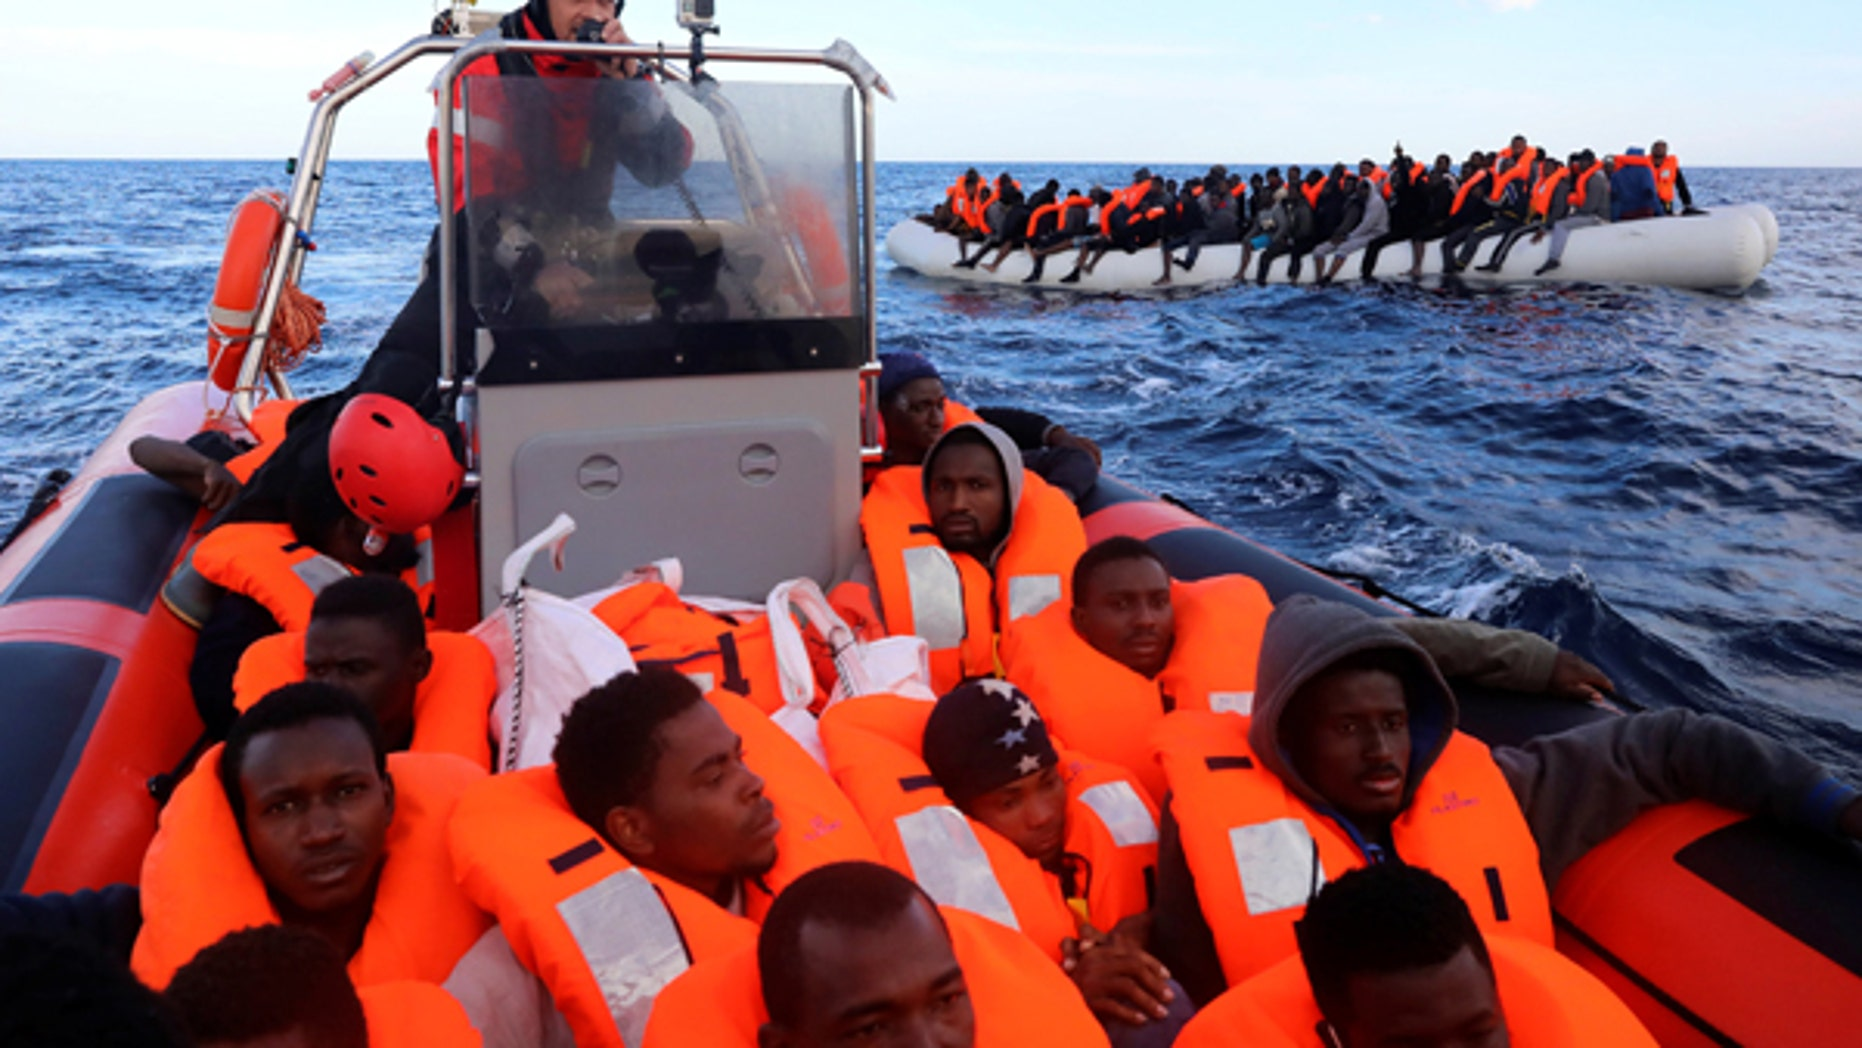 Sub-Saharan migrants are seen aboard an overcrowded raft as others are seen onboard a rescue boat, during a rescue operation by the Spanish NGO Proactiva Open Arms in the central Mediterranean Sea, 21 miles north of the coastal Libyan city of Sabratha.